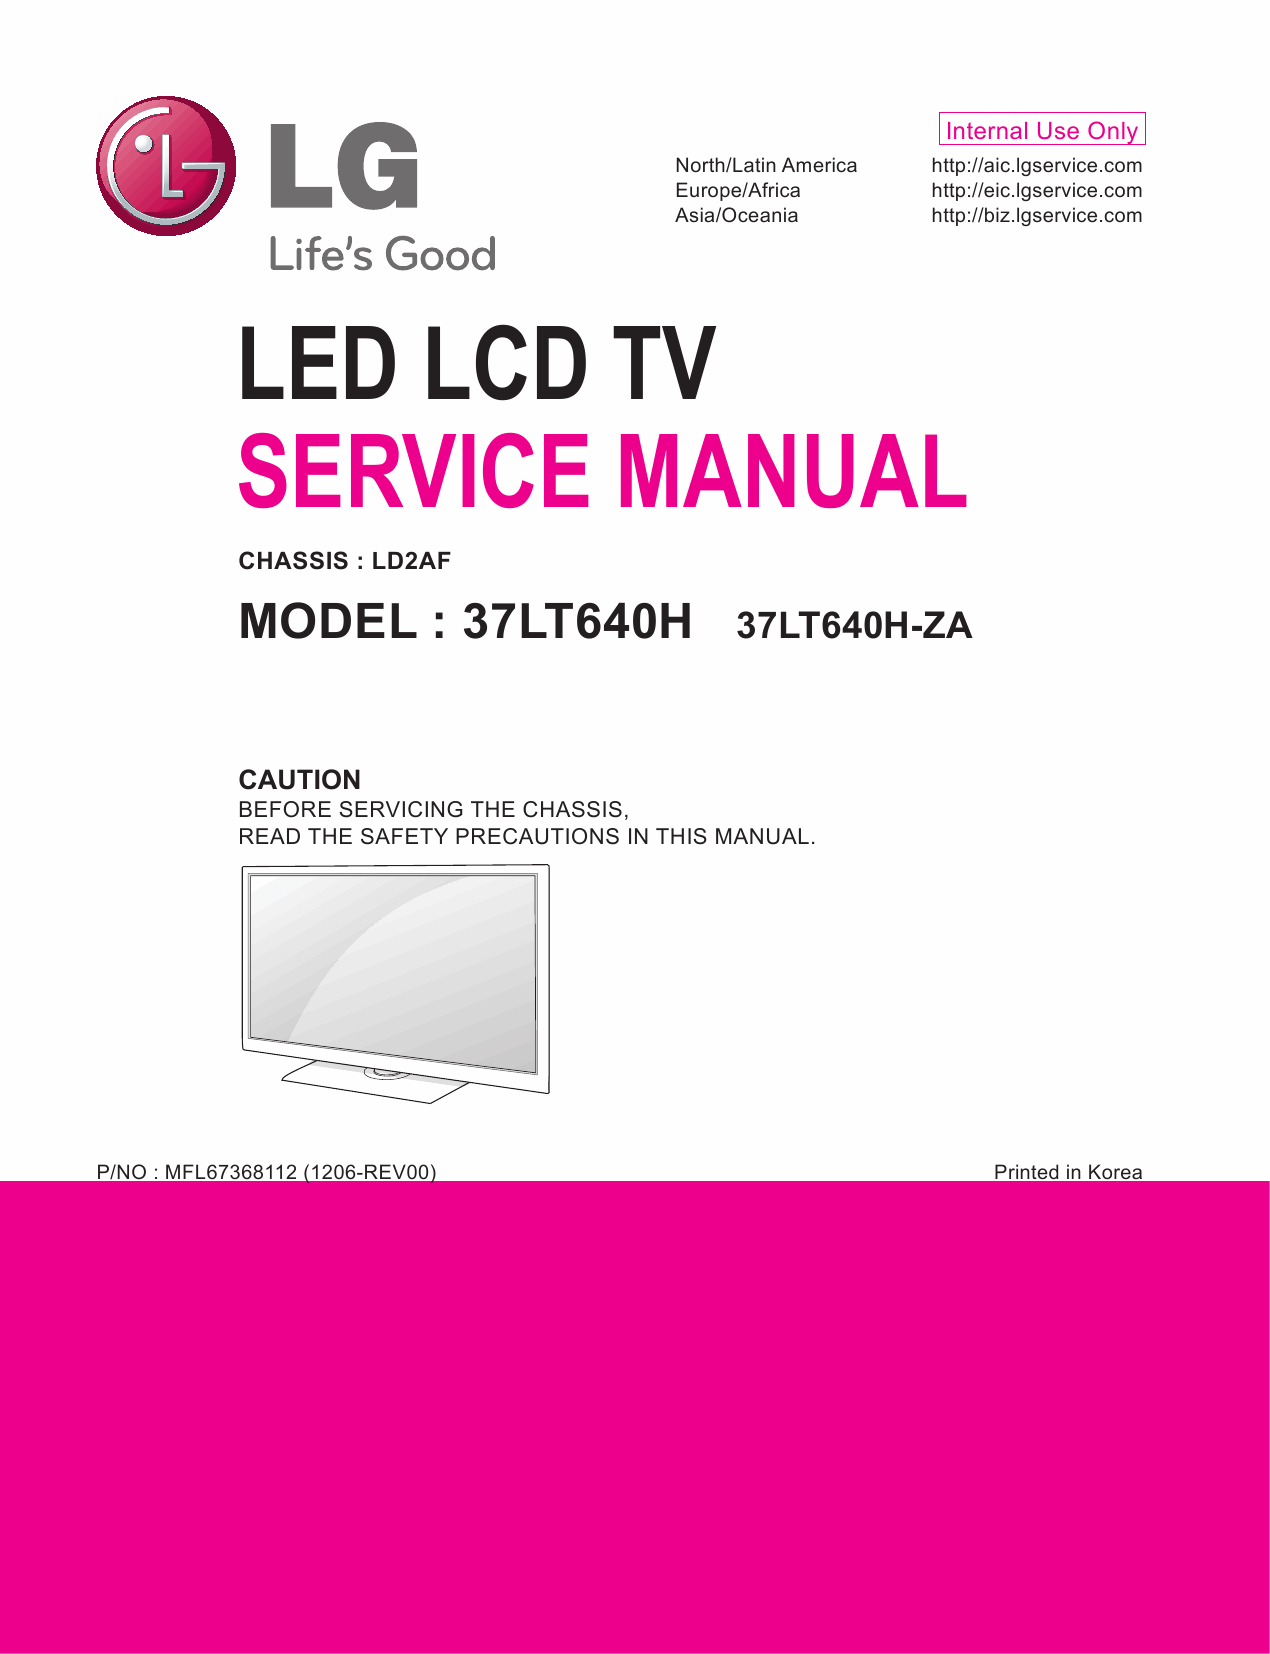 LG_LED_TV_37LT640H_Service_Manual_2012_Qmanual.com-1